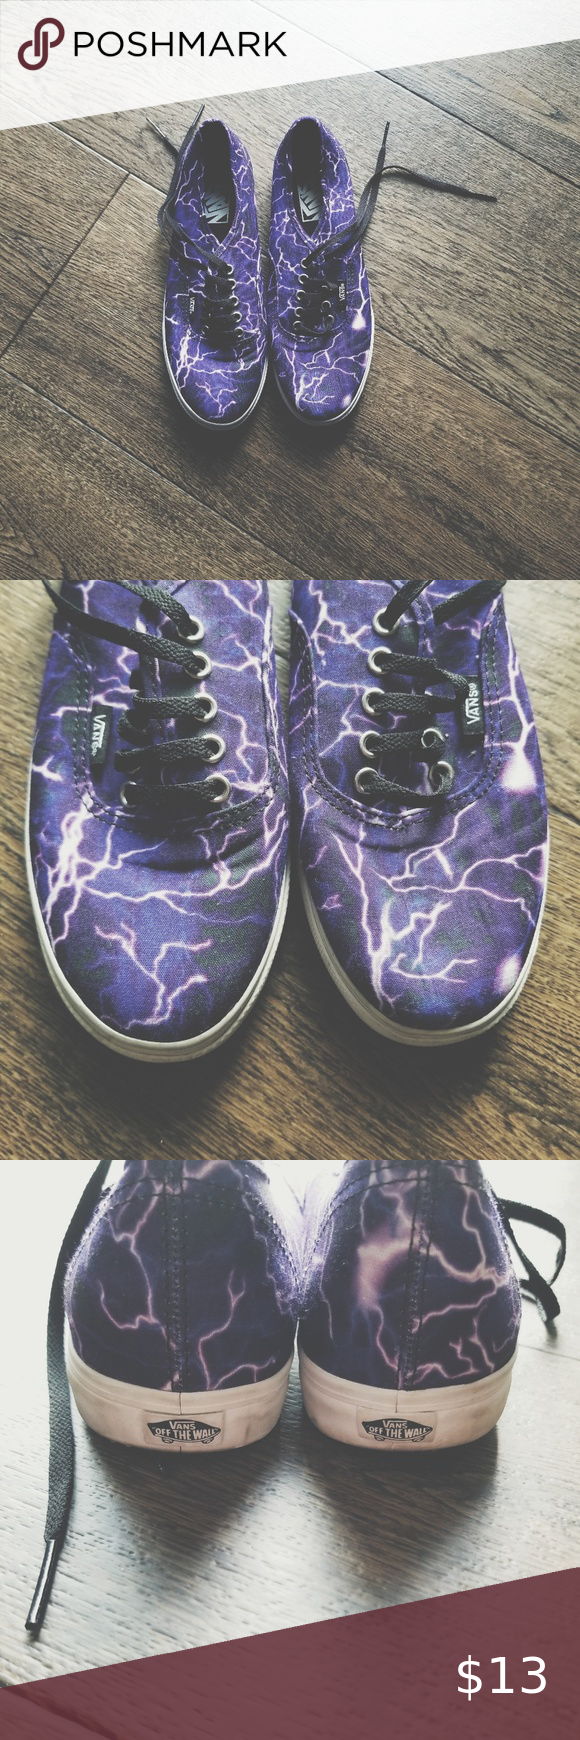 58c58ec866 Vans Lightning Lo Pro Purple white lightning printed Vans lo pro shoes. The  lo pro style is my favorite from Vans